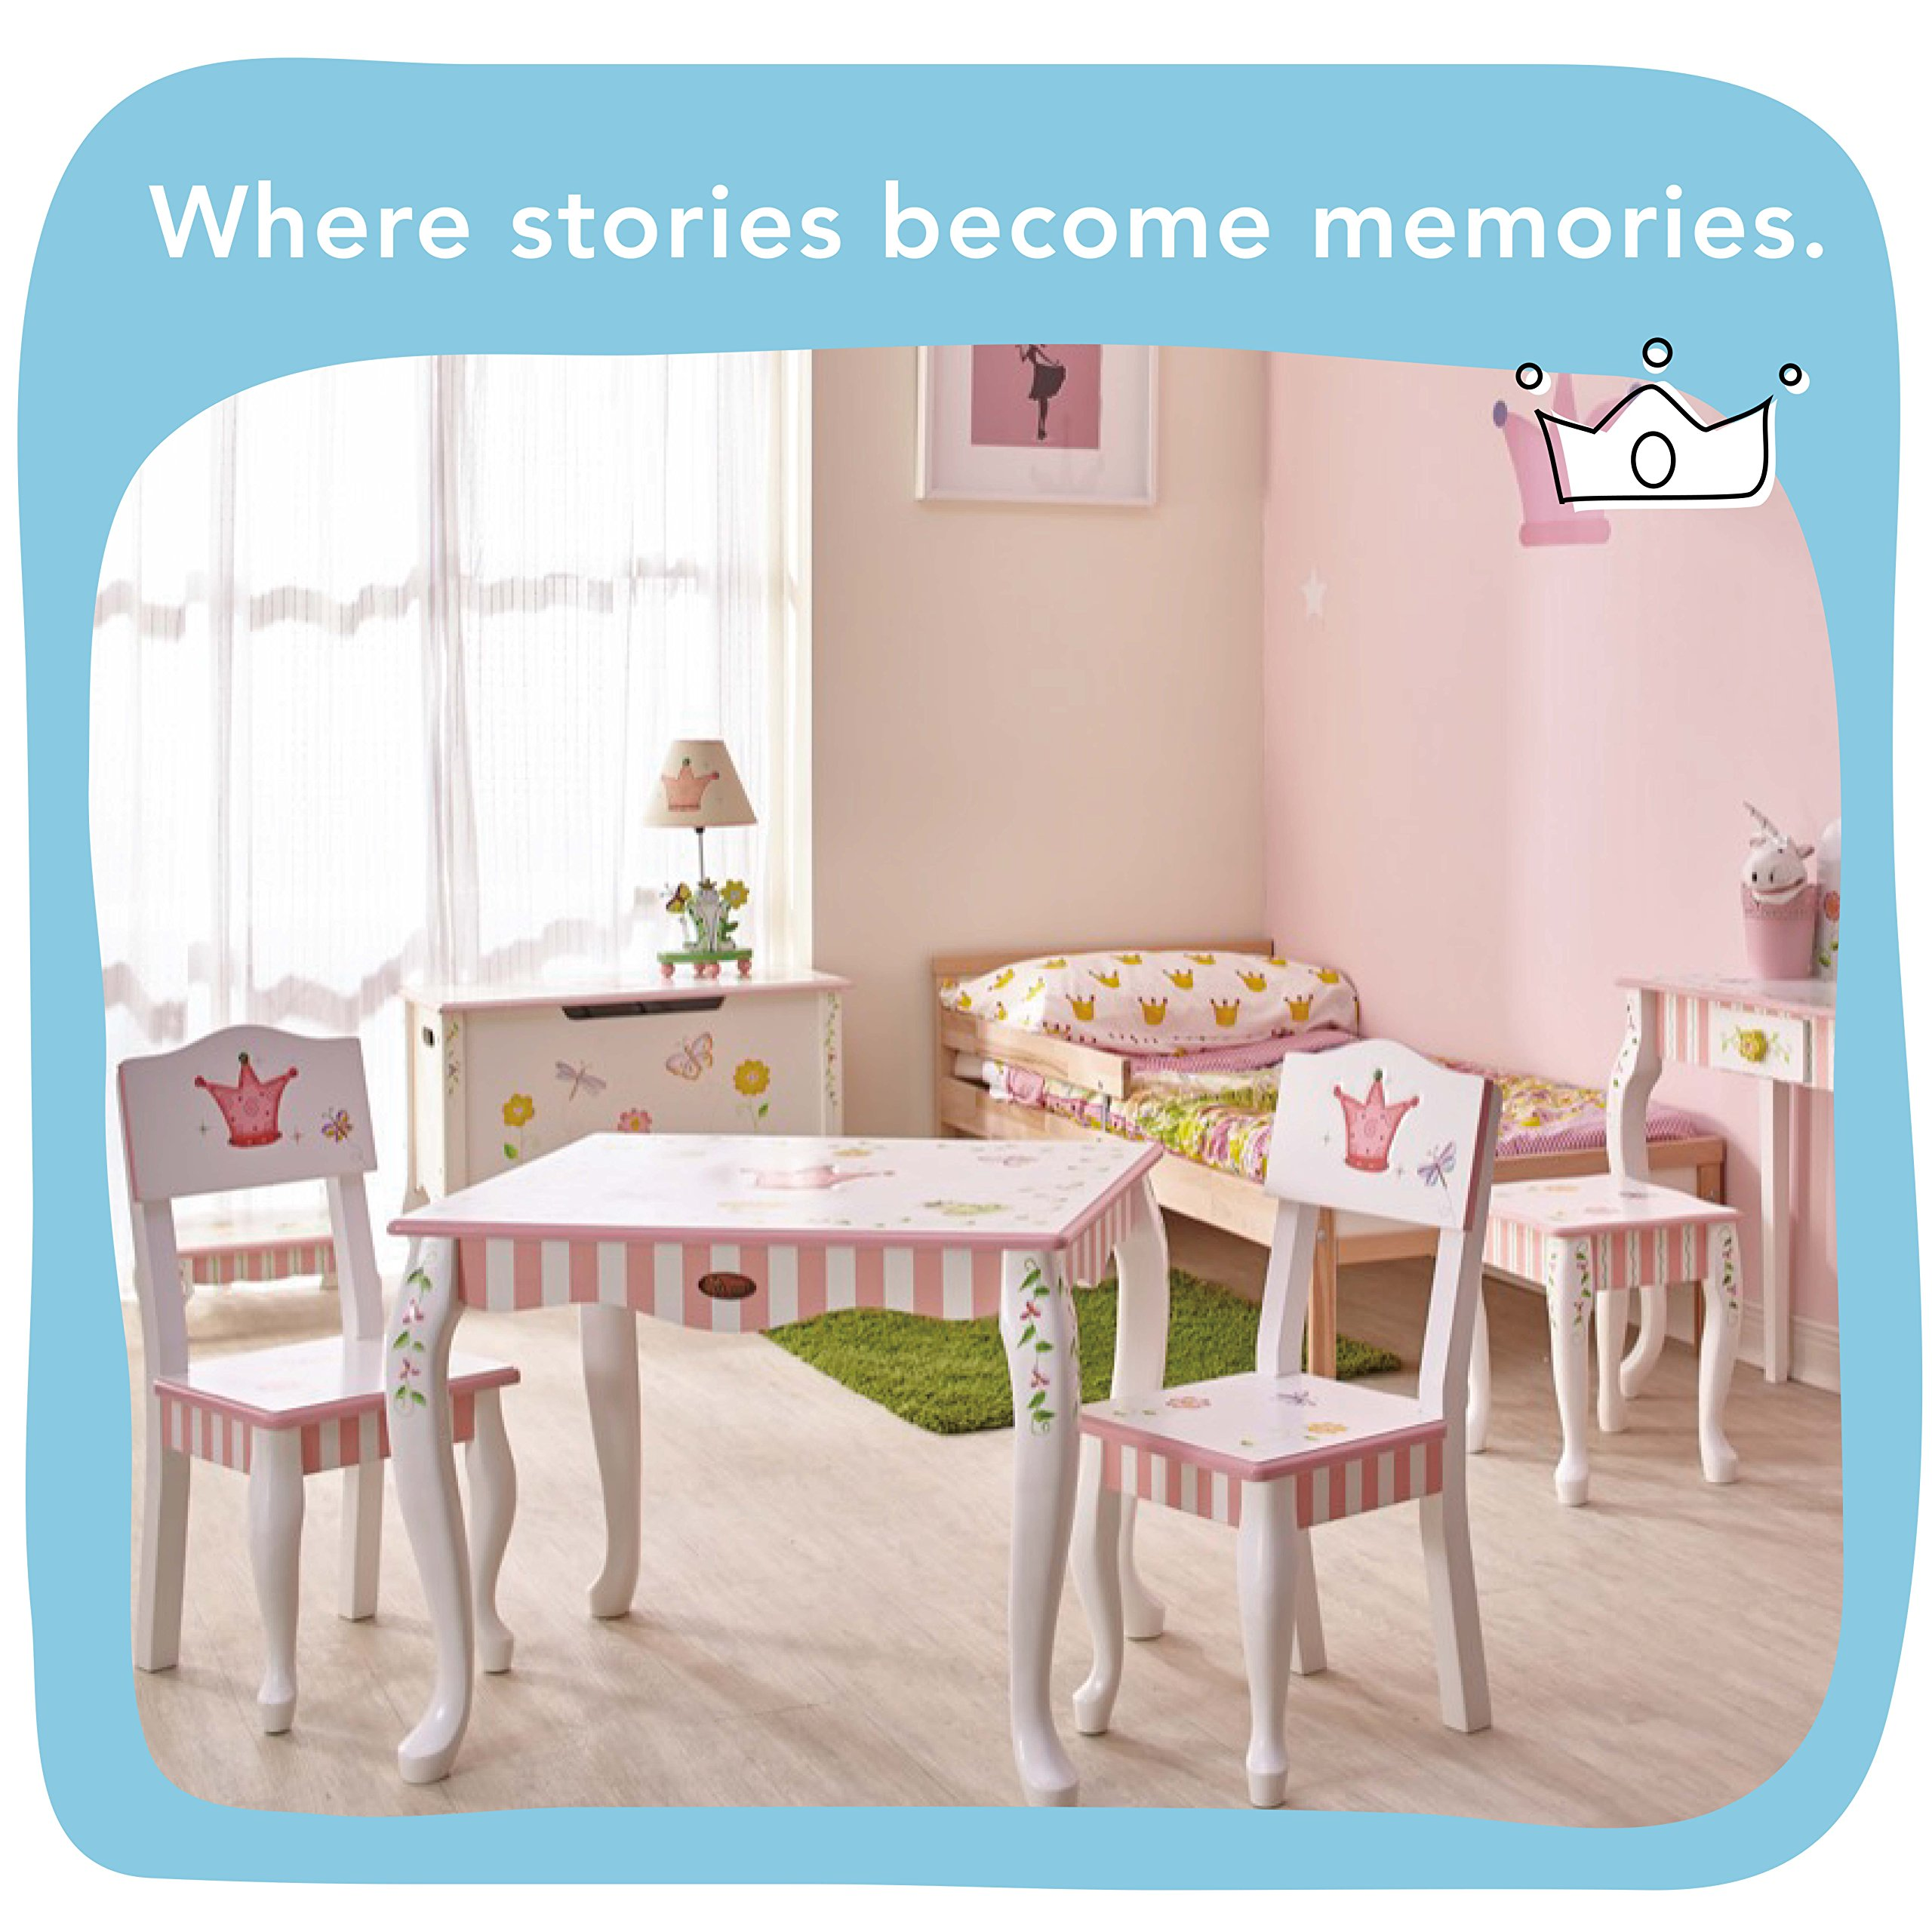 Fantasy Fields - Princess & Frog Thematic Hand Crafted Kids Wooden Table and 2 Chairs Set  Imagination Inspiring Hand Crafted & Hand Painted Details   Non-Toxic, Lead Free Water-based Paint by Fantasy Fields (Image #5)